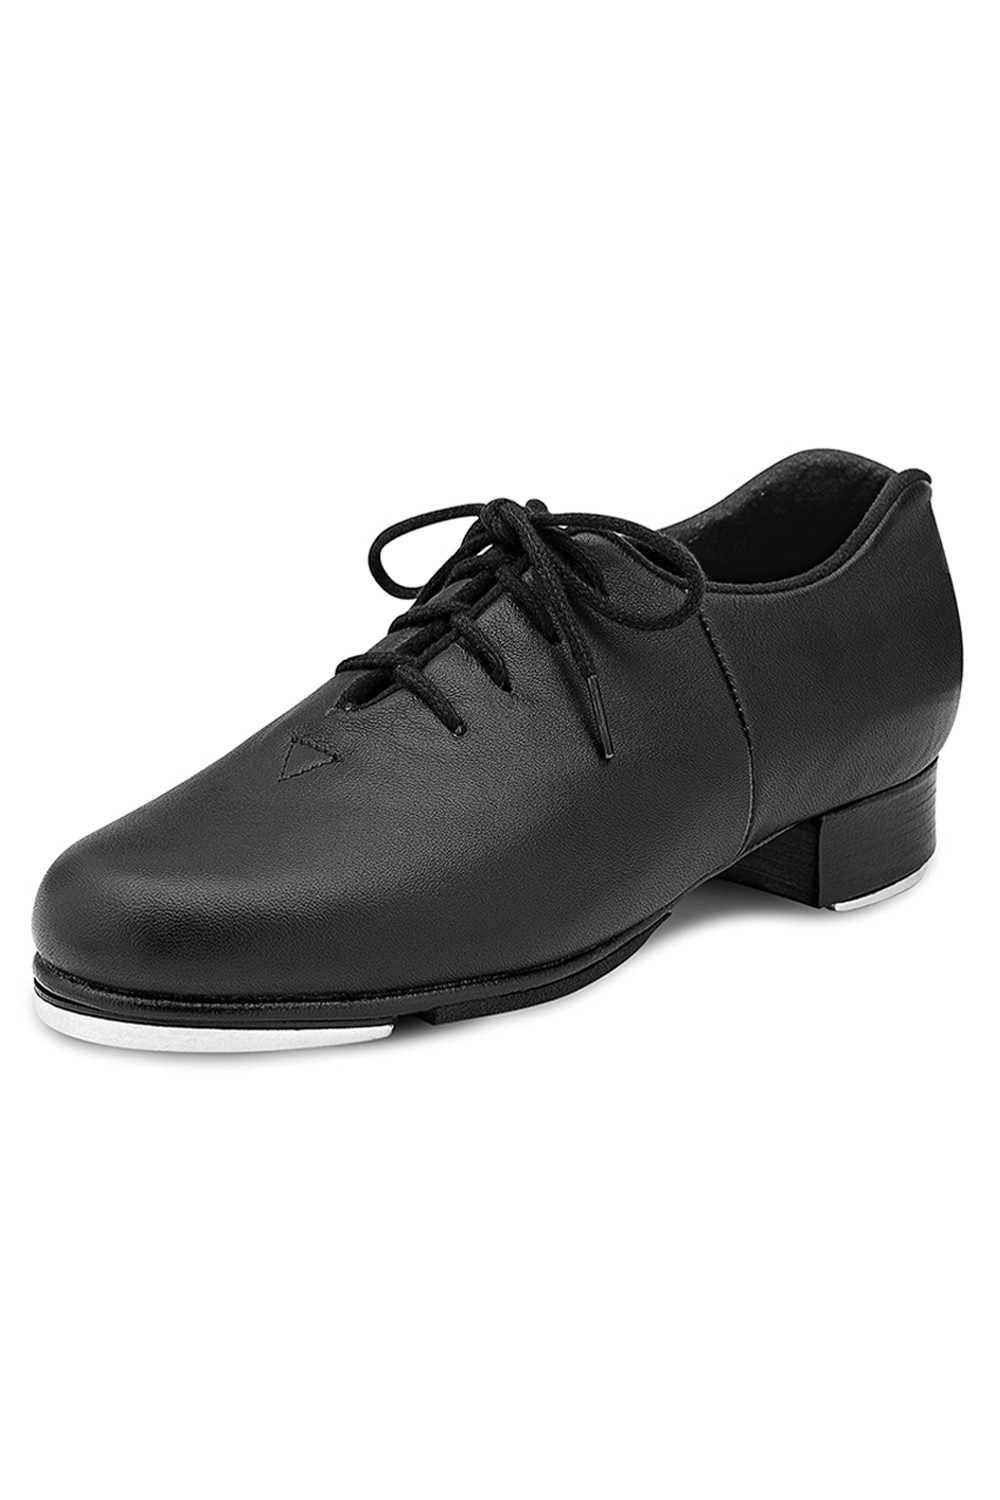 Sapato De Sapateado Audeo Jazz Women's Tap Shoes